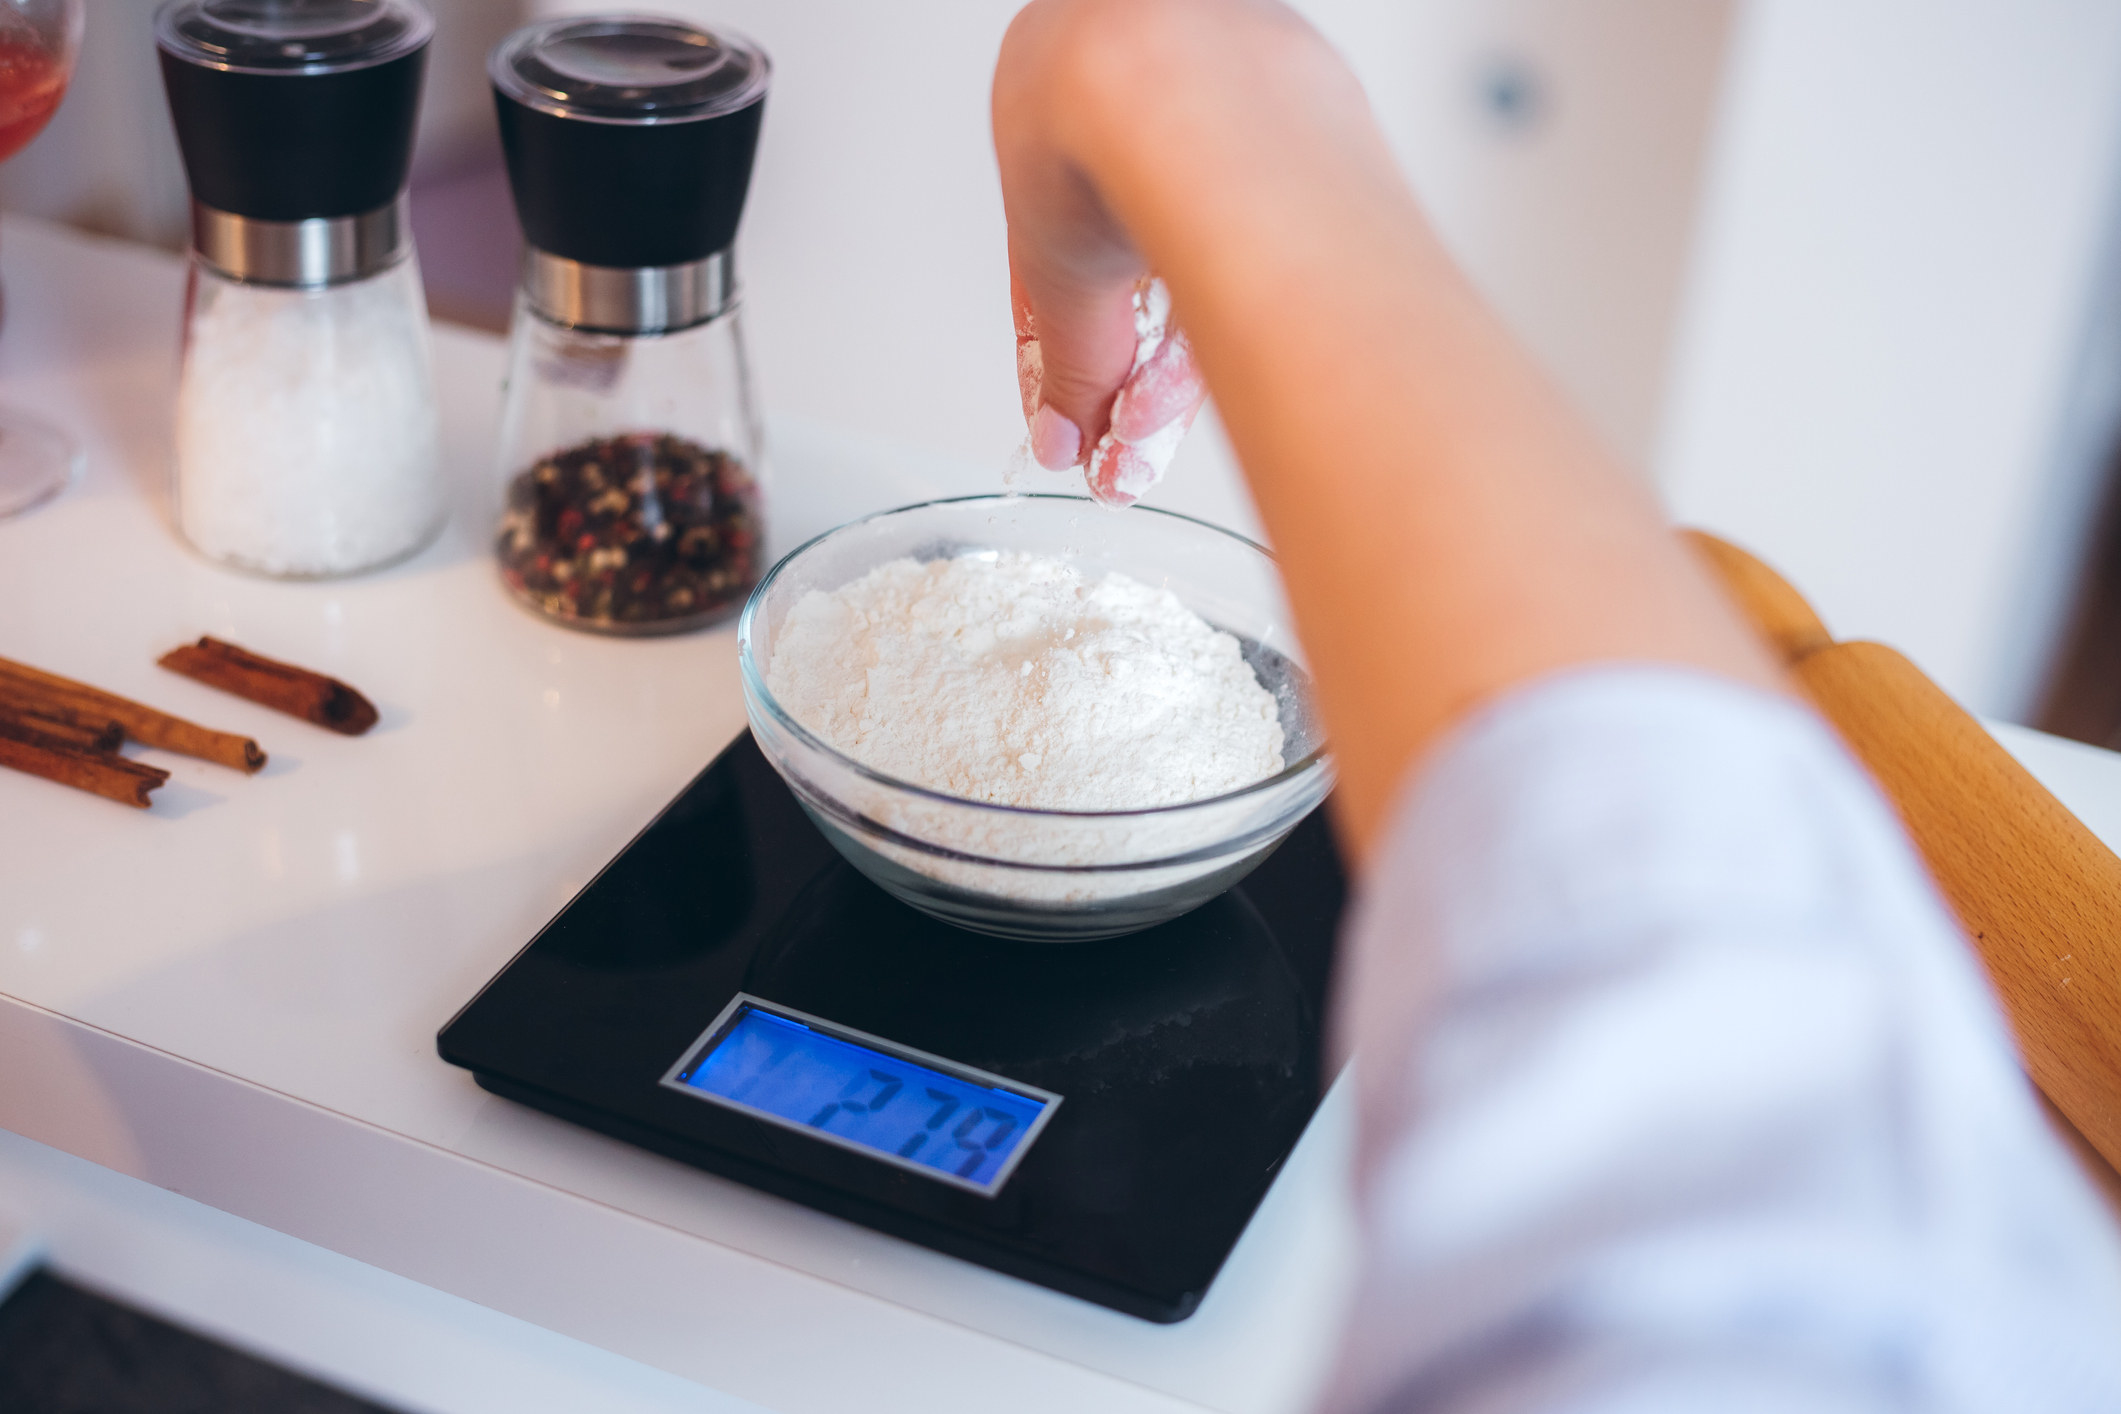 A person weighing some flour on a digital scale